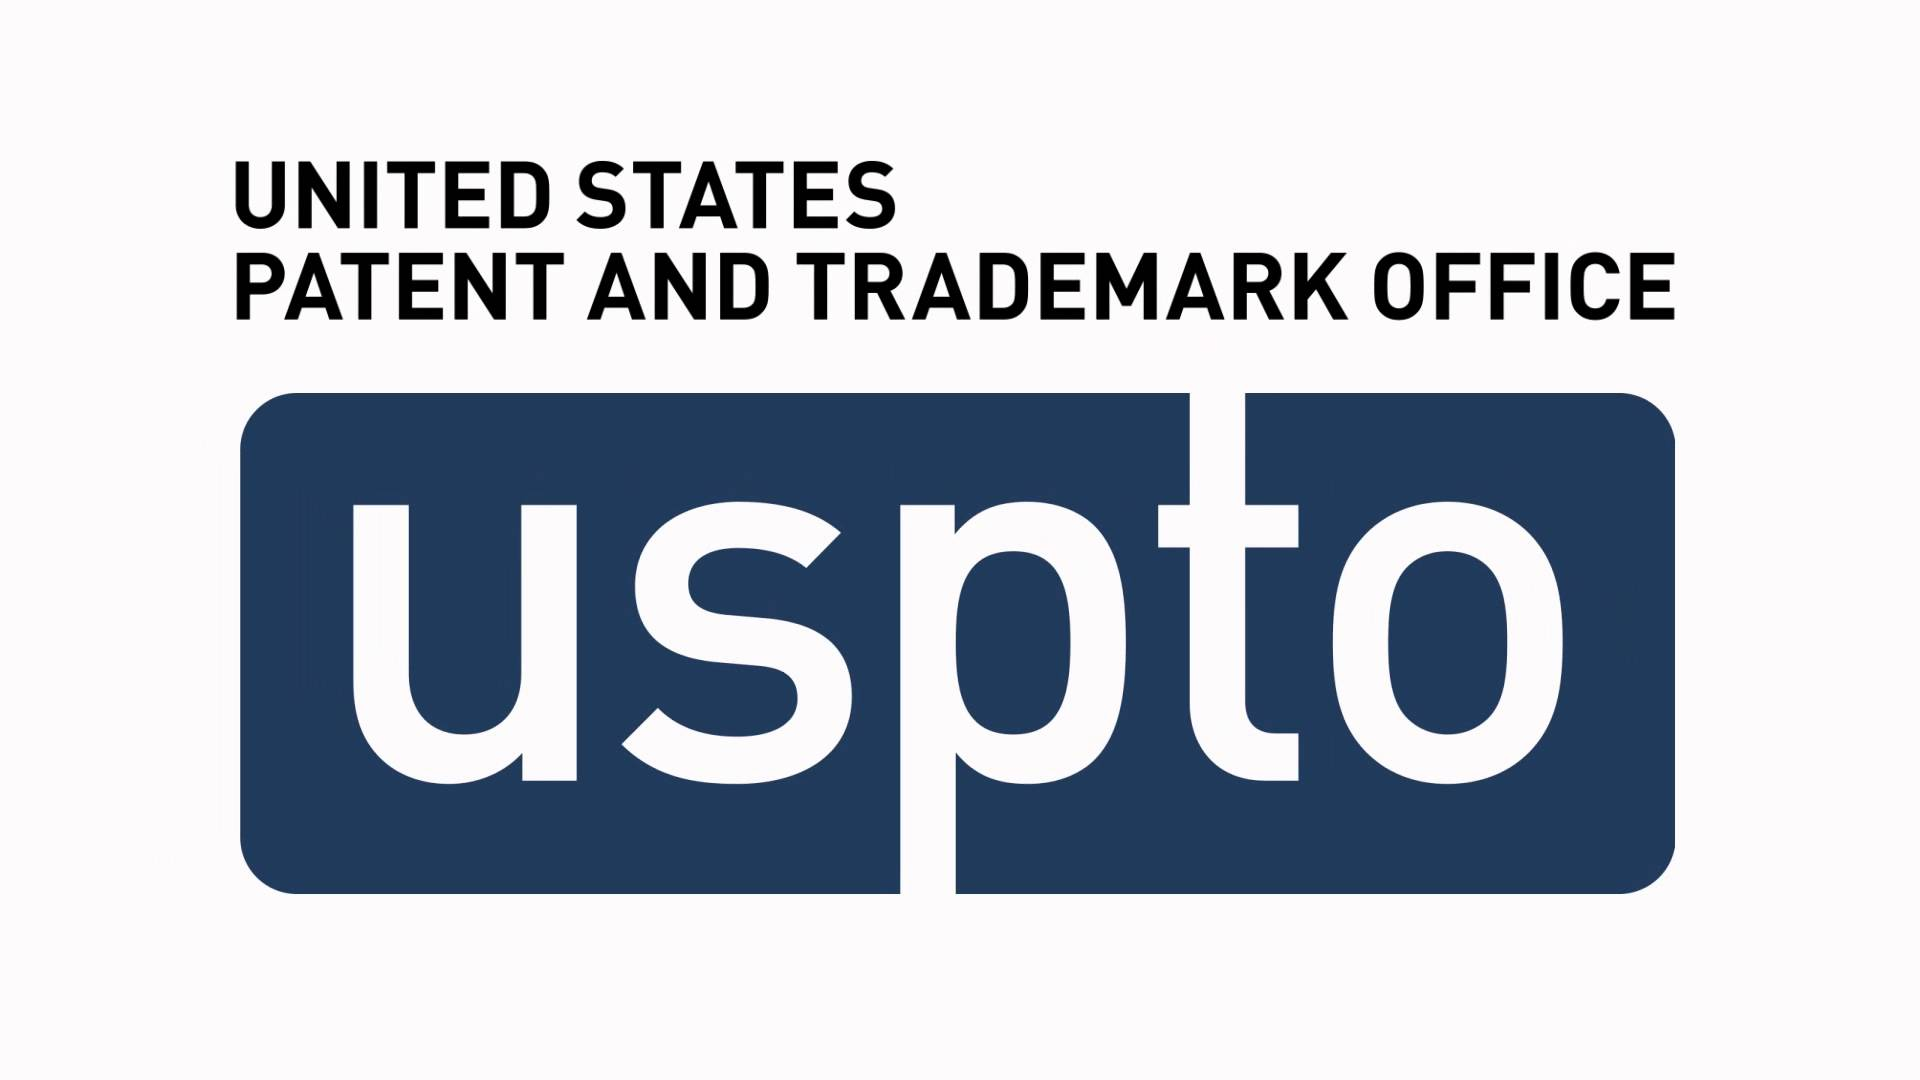 USPTO [United States Patent and Trademark Office]